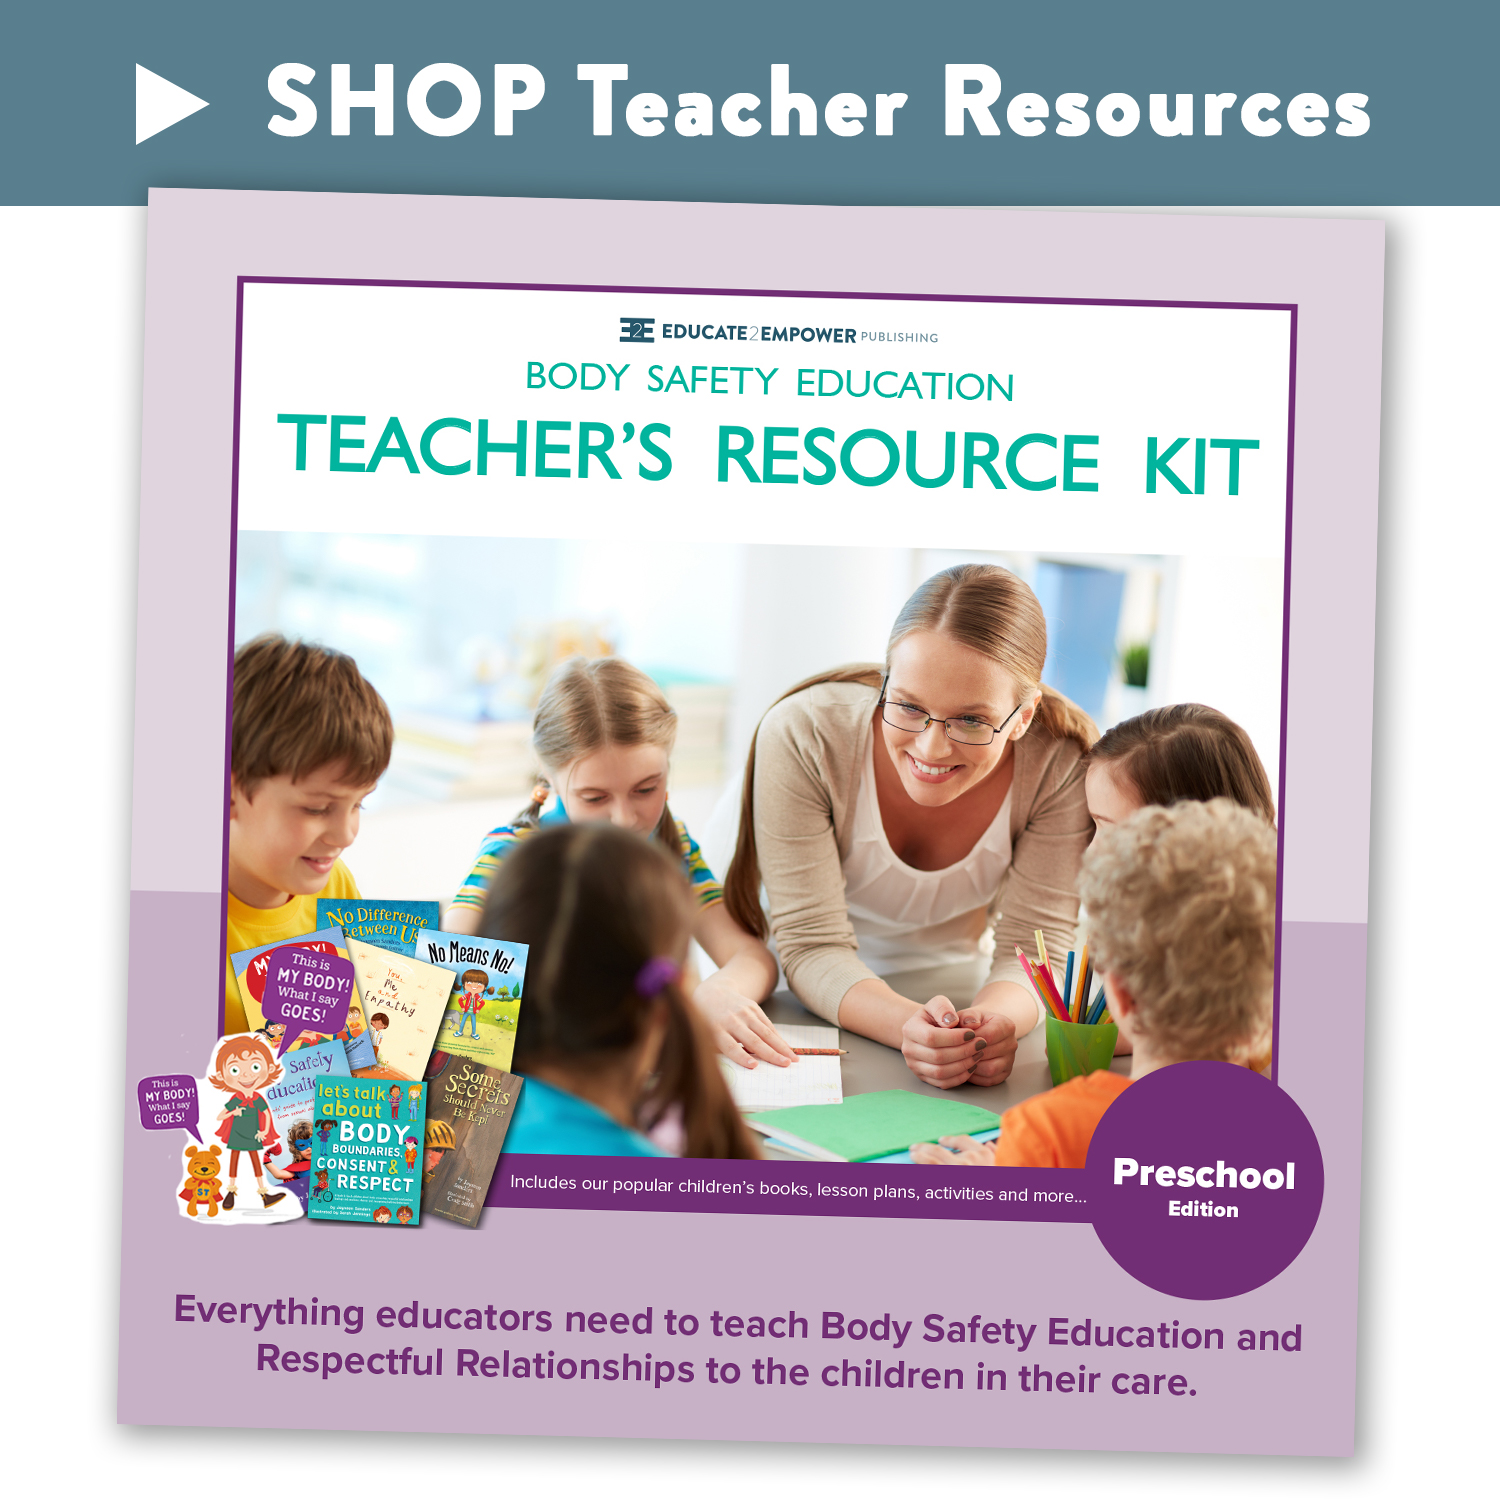 E2E_shop_TeacherResources_2.jpg